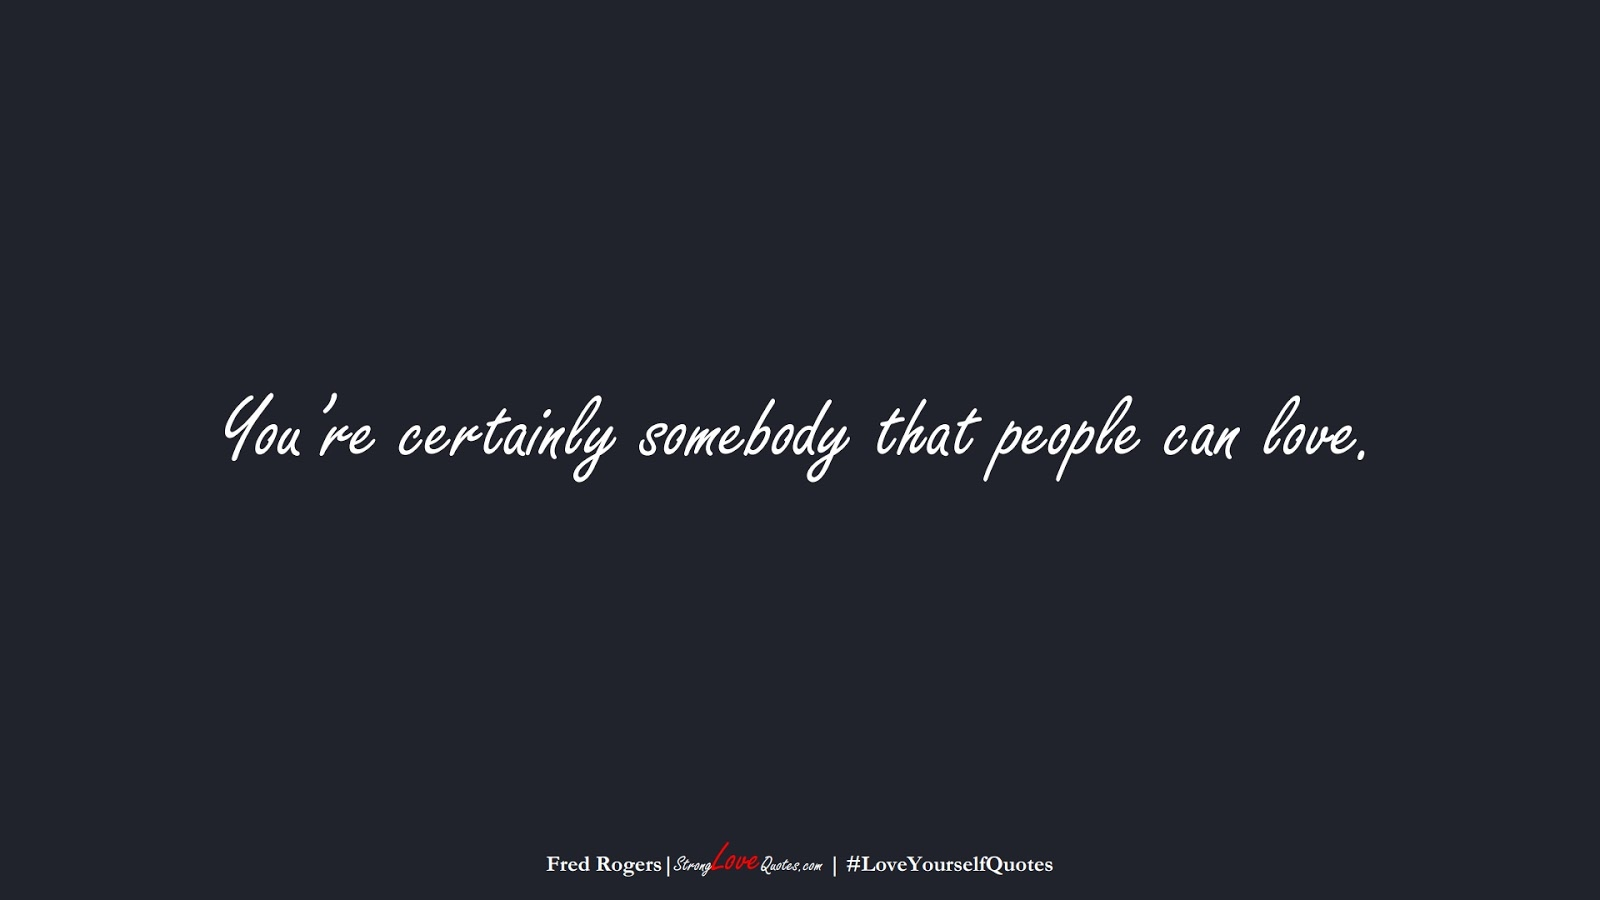 You're certainly somebody that people can love. (Fred Rogers);  #LoveYourselfQuotes